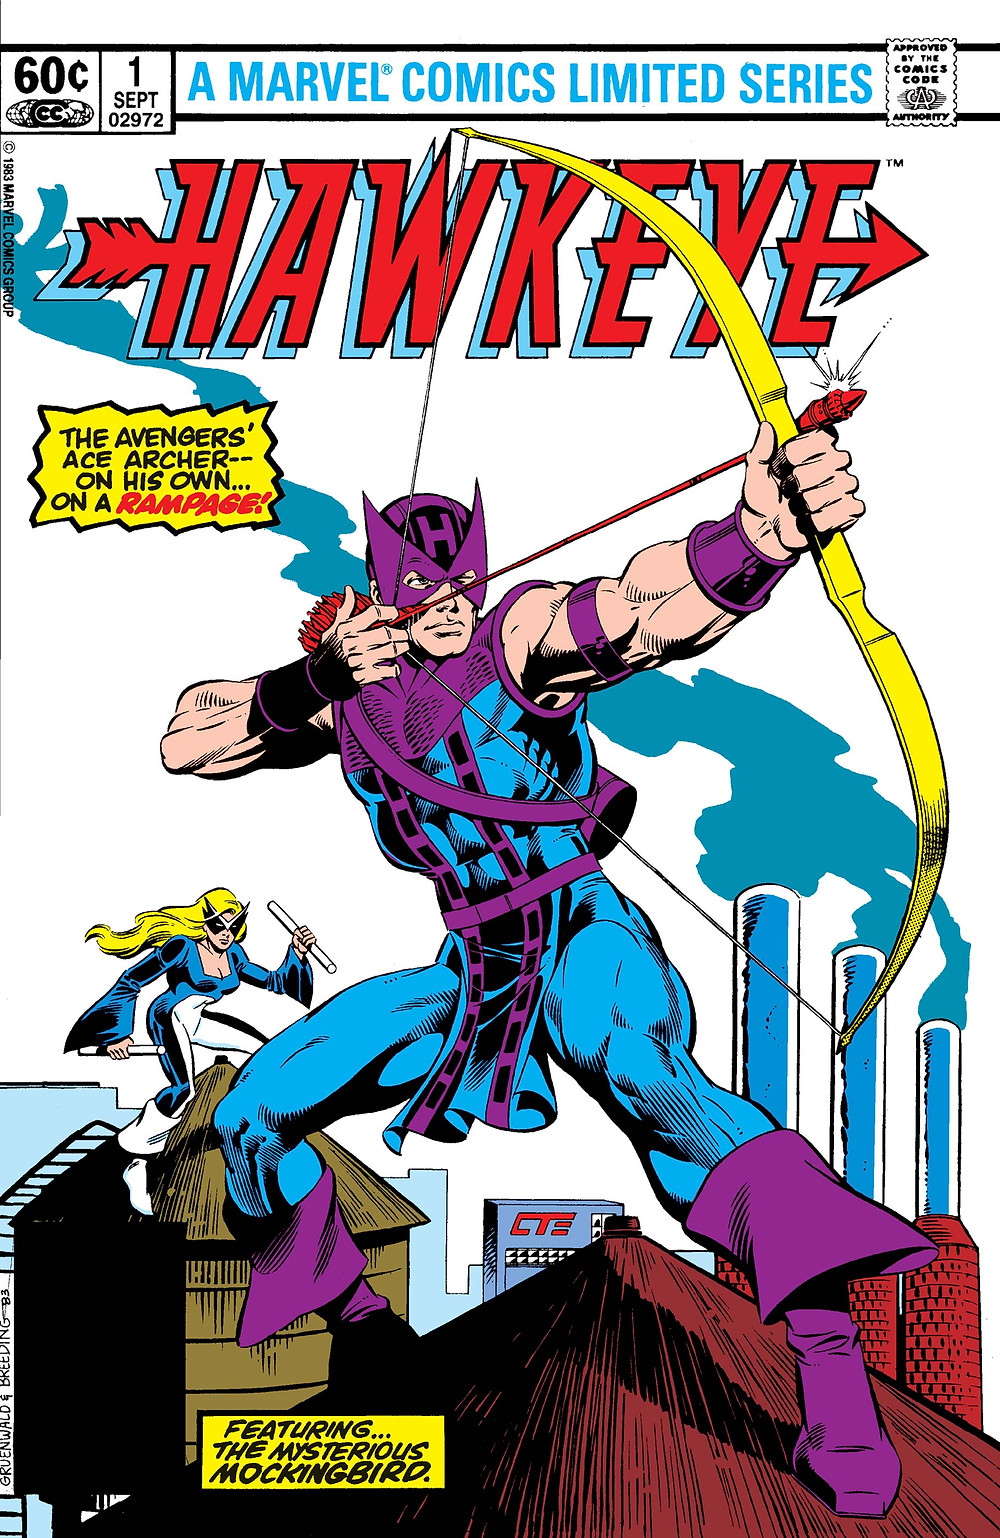 Cover for Hawkeye Issue 1 writing and art by Mark Gruenwald.